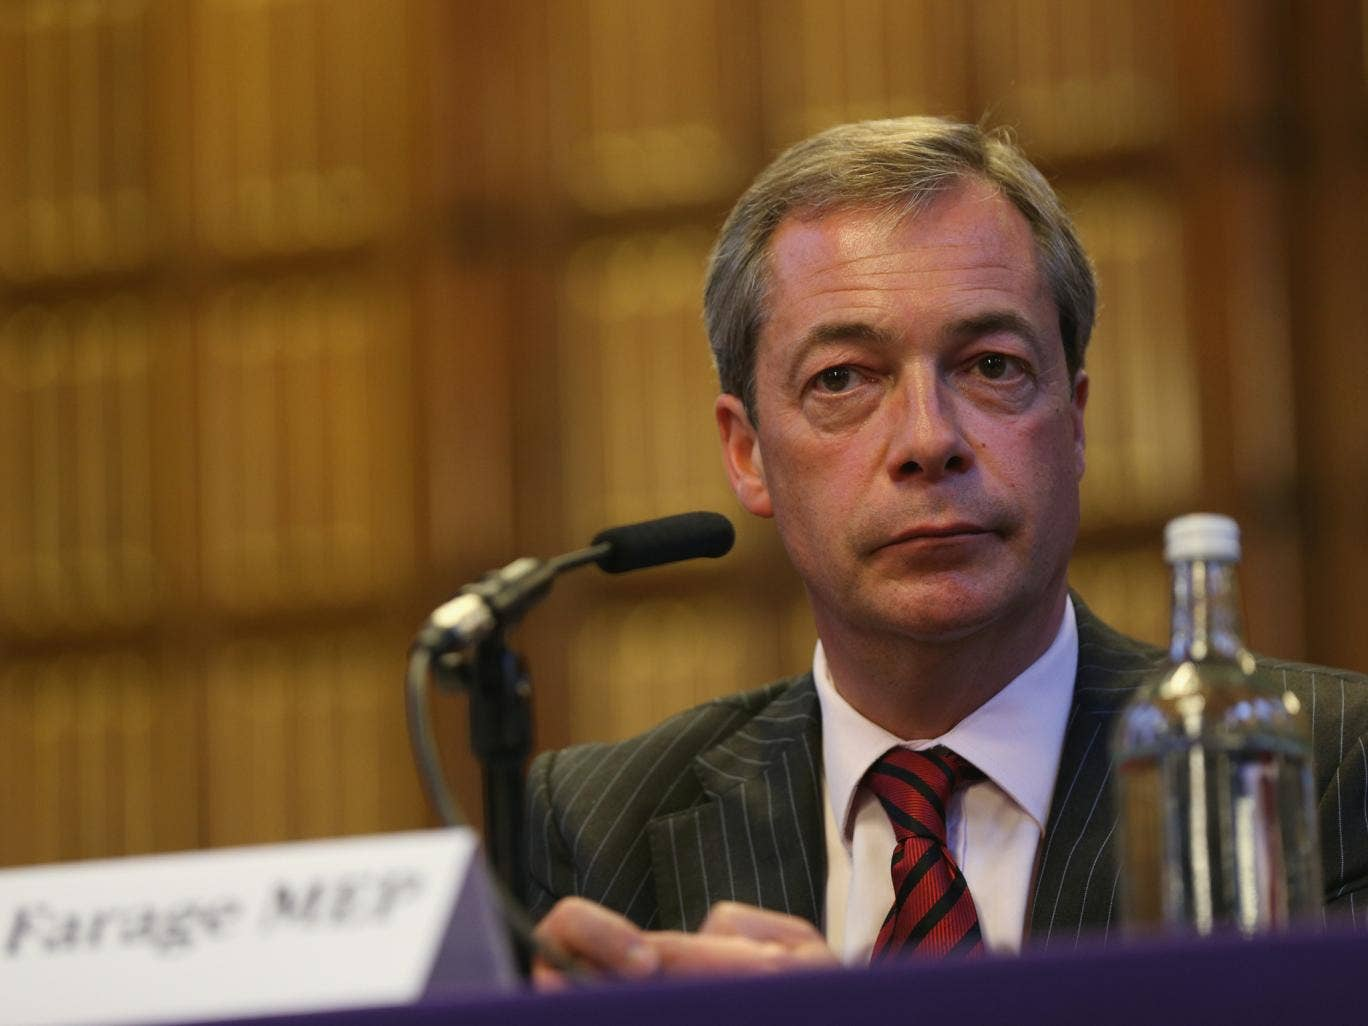 UKIP leader Nigel Farage has called on the Government to start allowing Syrian refugees into the country